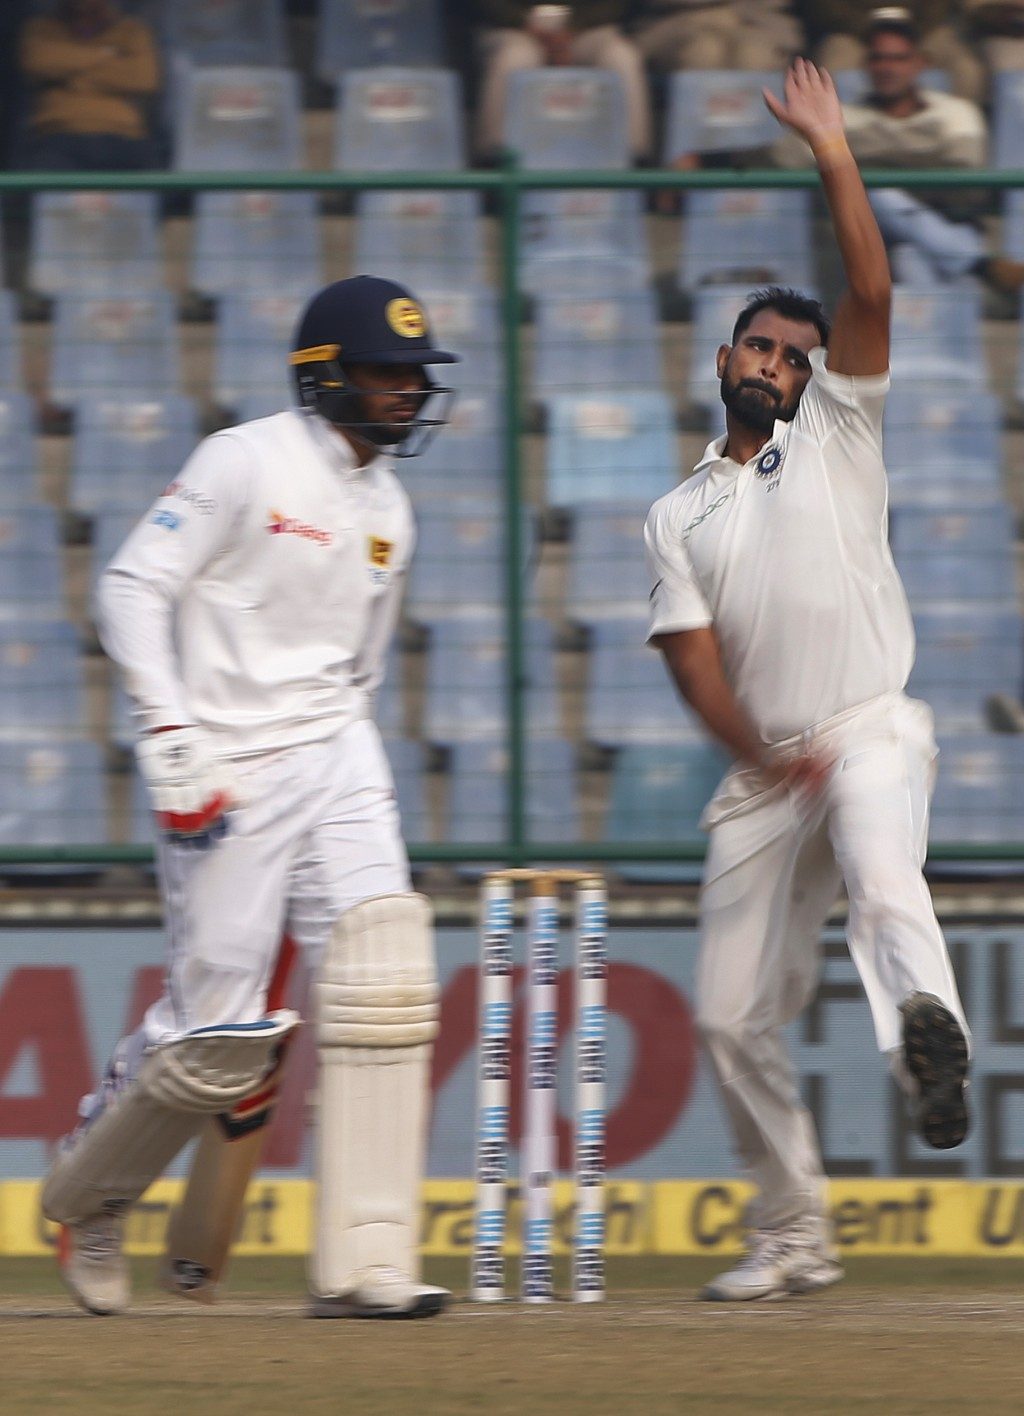 India's Mohammed Shami, right, bowls a delivery during the fifth day of their third test cricket match against Sri Lanka in New Delhi, India, Wednesda